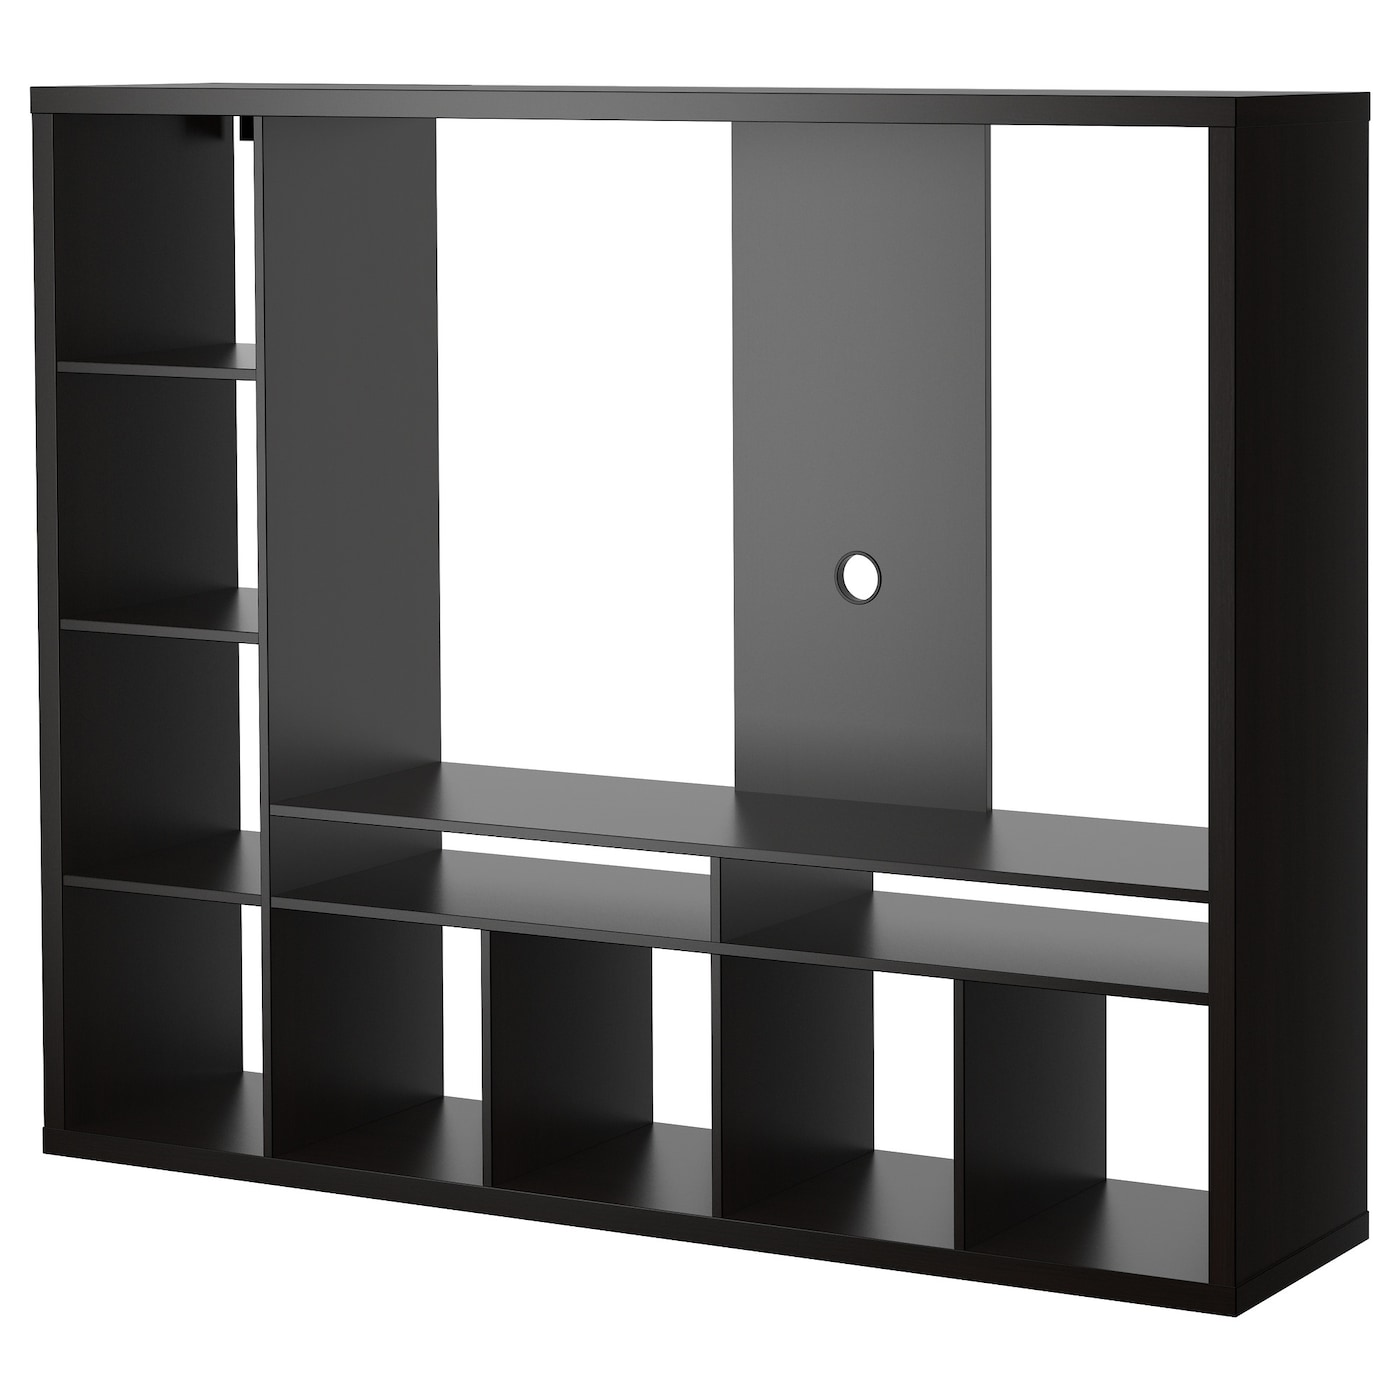 Ikea Black Tv Cabinet Home Design Ideas And Pictures # Notice Expedit Ikea